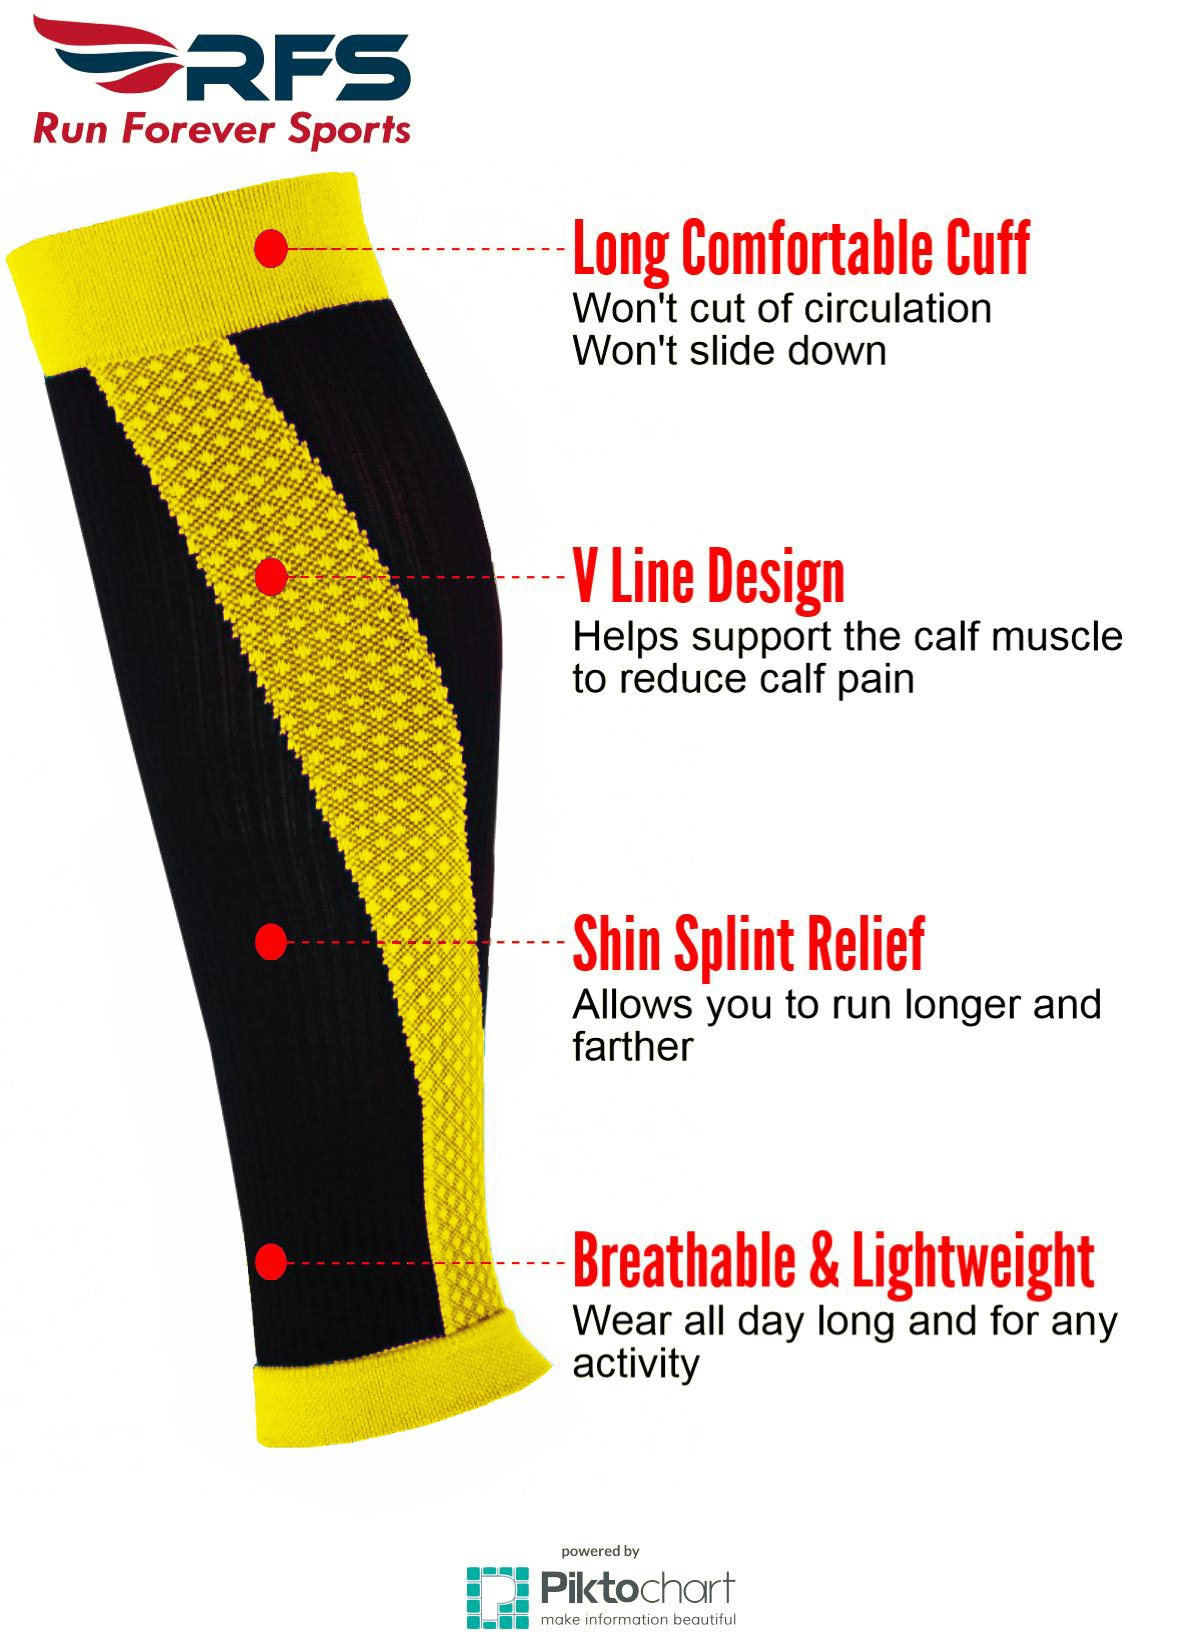 AHOMATE Shin Splint Compression Sleeves By Run Forever Sports – Health & Fitness Accessories for Men & Women – Ideal for Running, Cycling, Nurses, Maternity & More (Yellow, Medium)